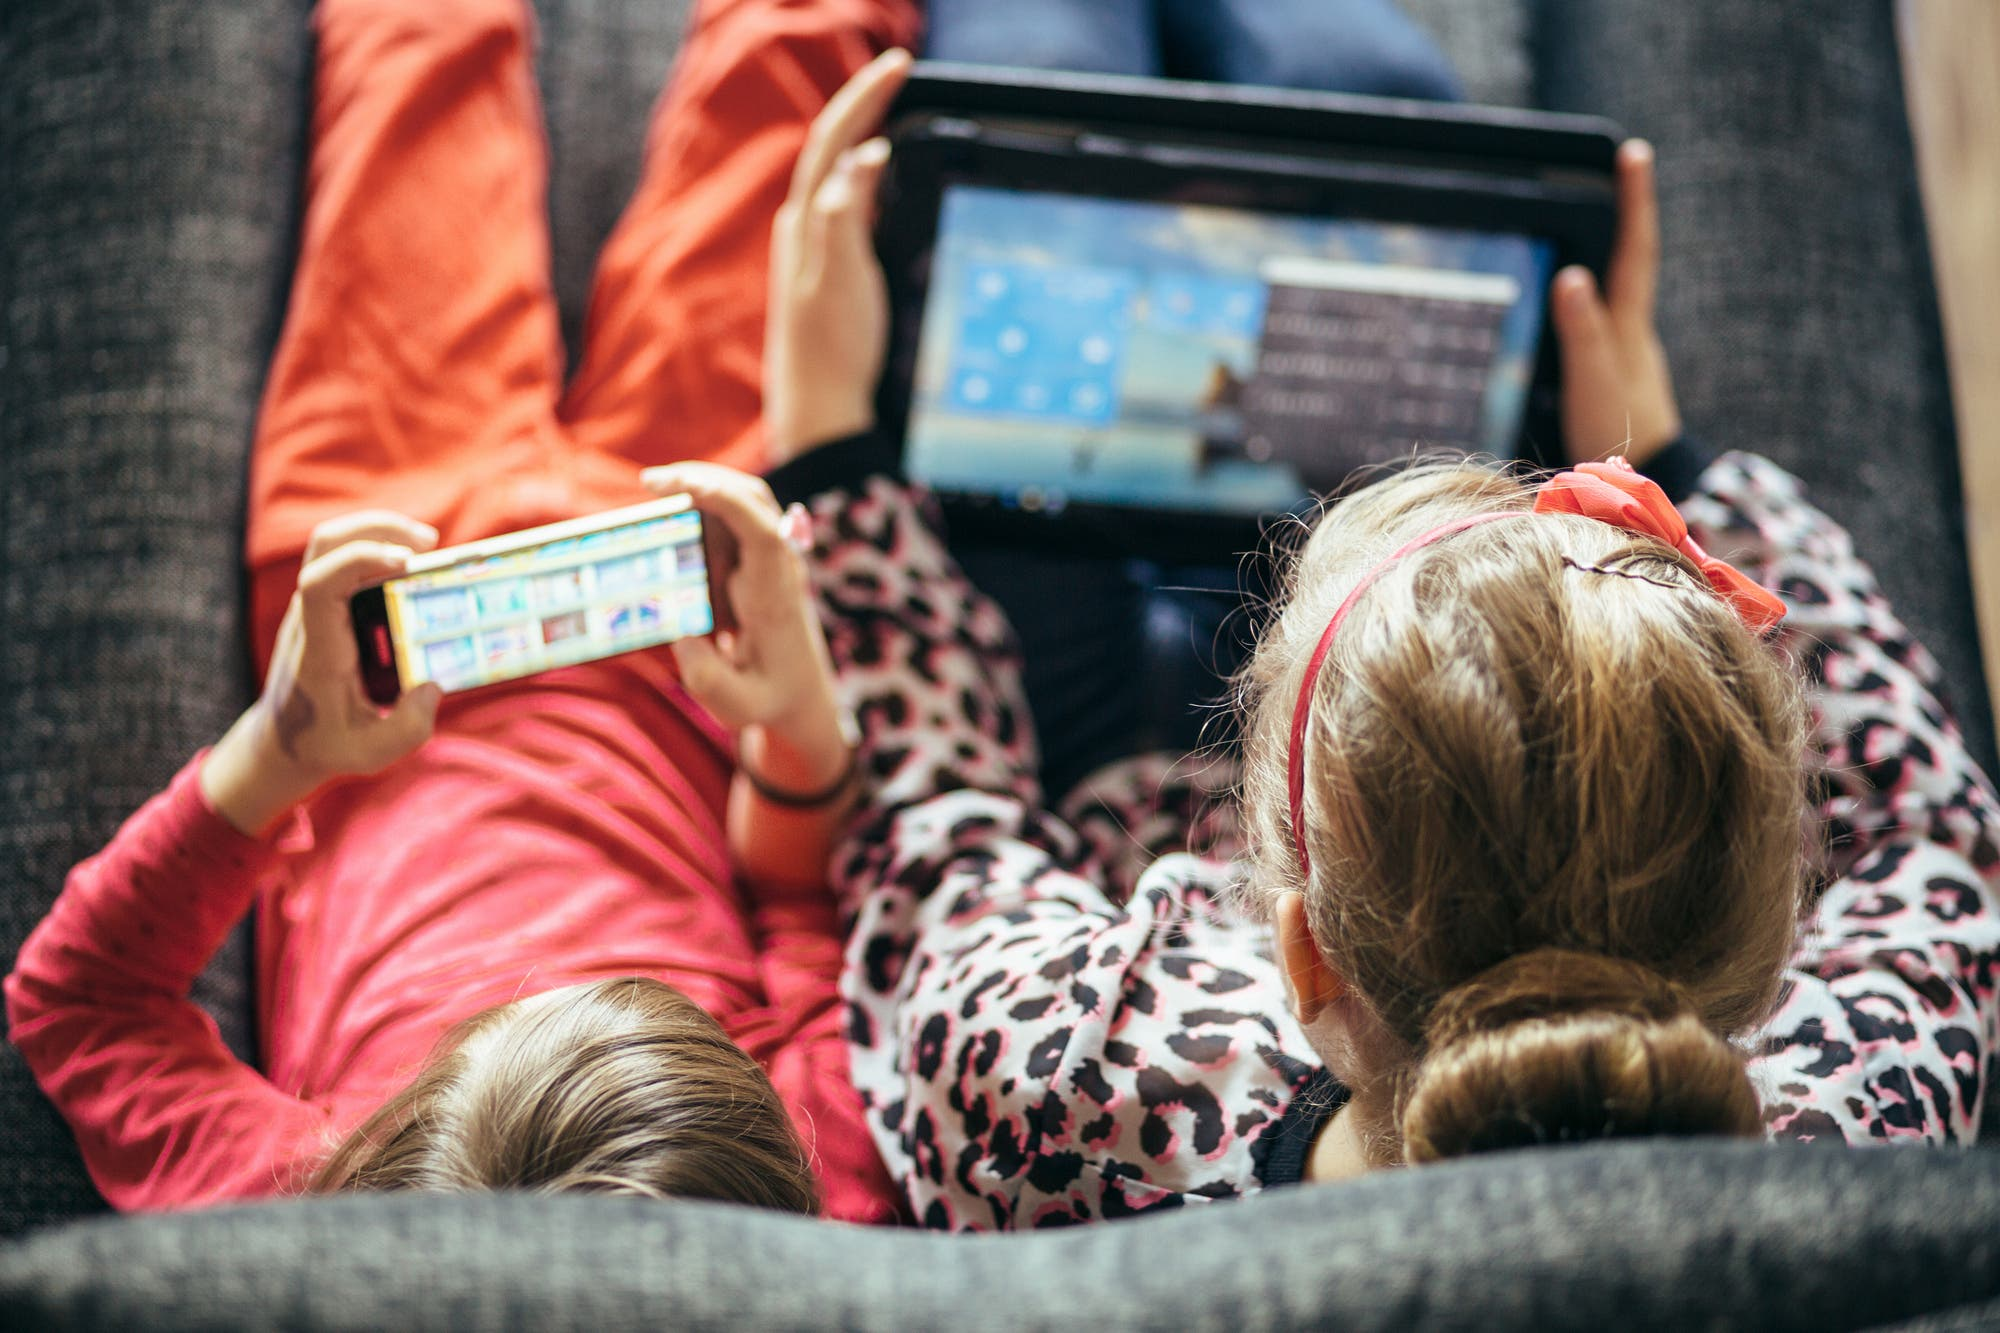 Digital resources to accompany and care for children in the use of technology during quarantine